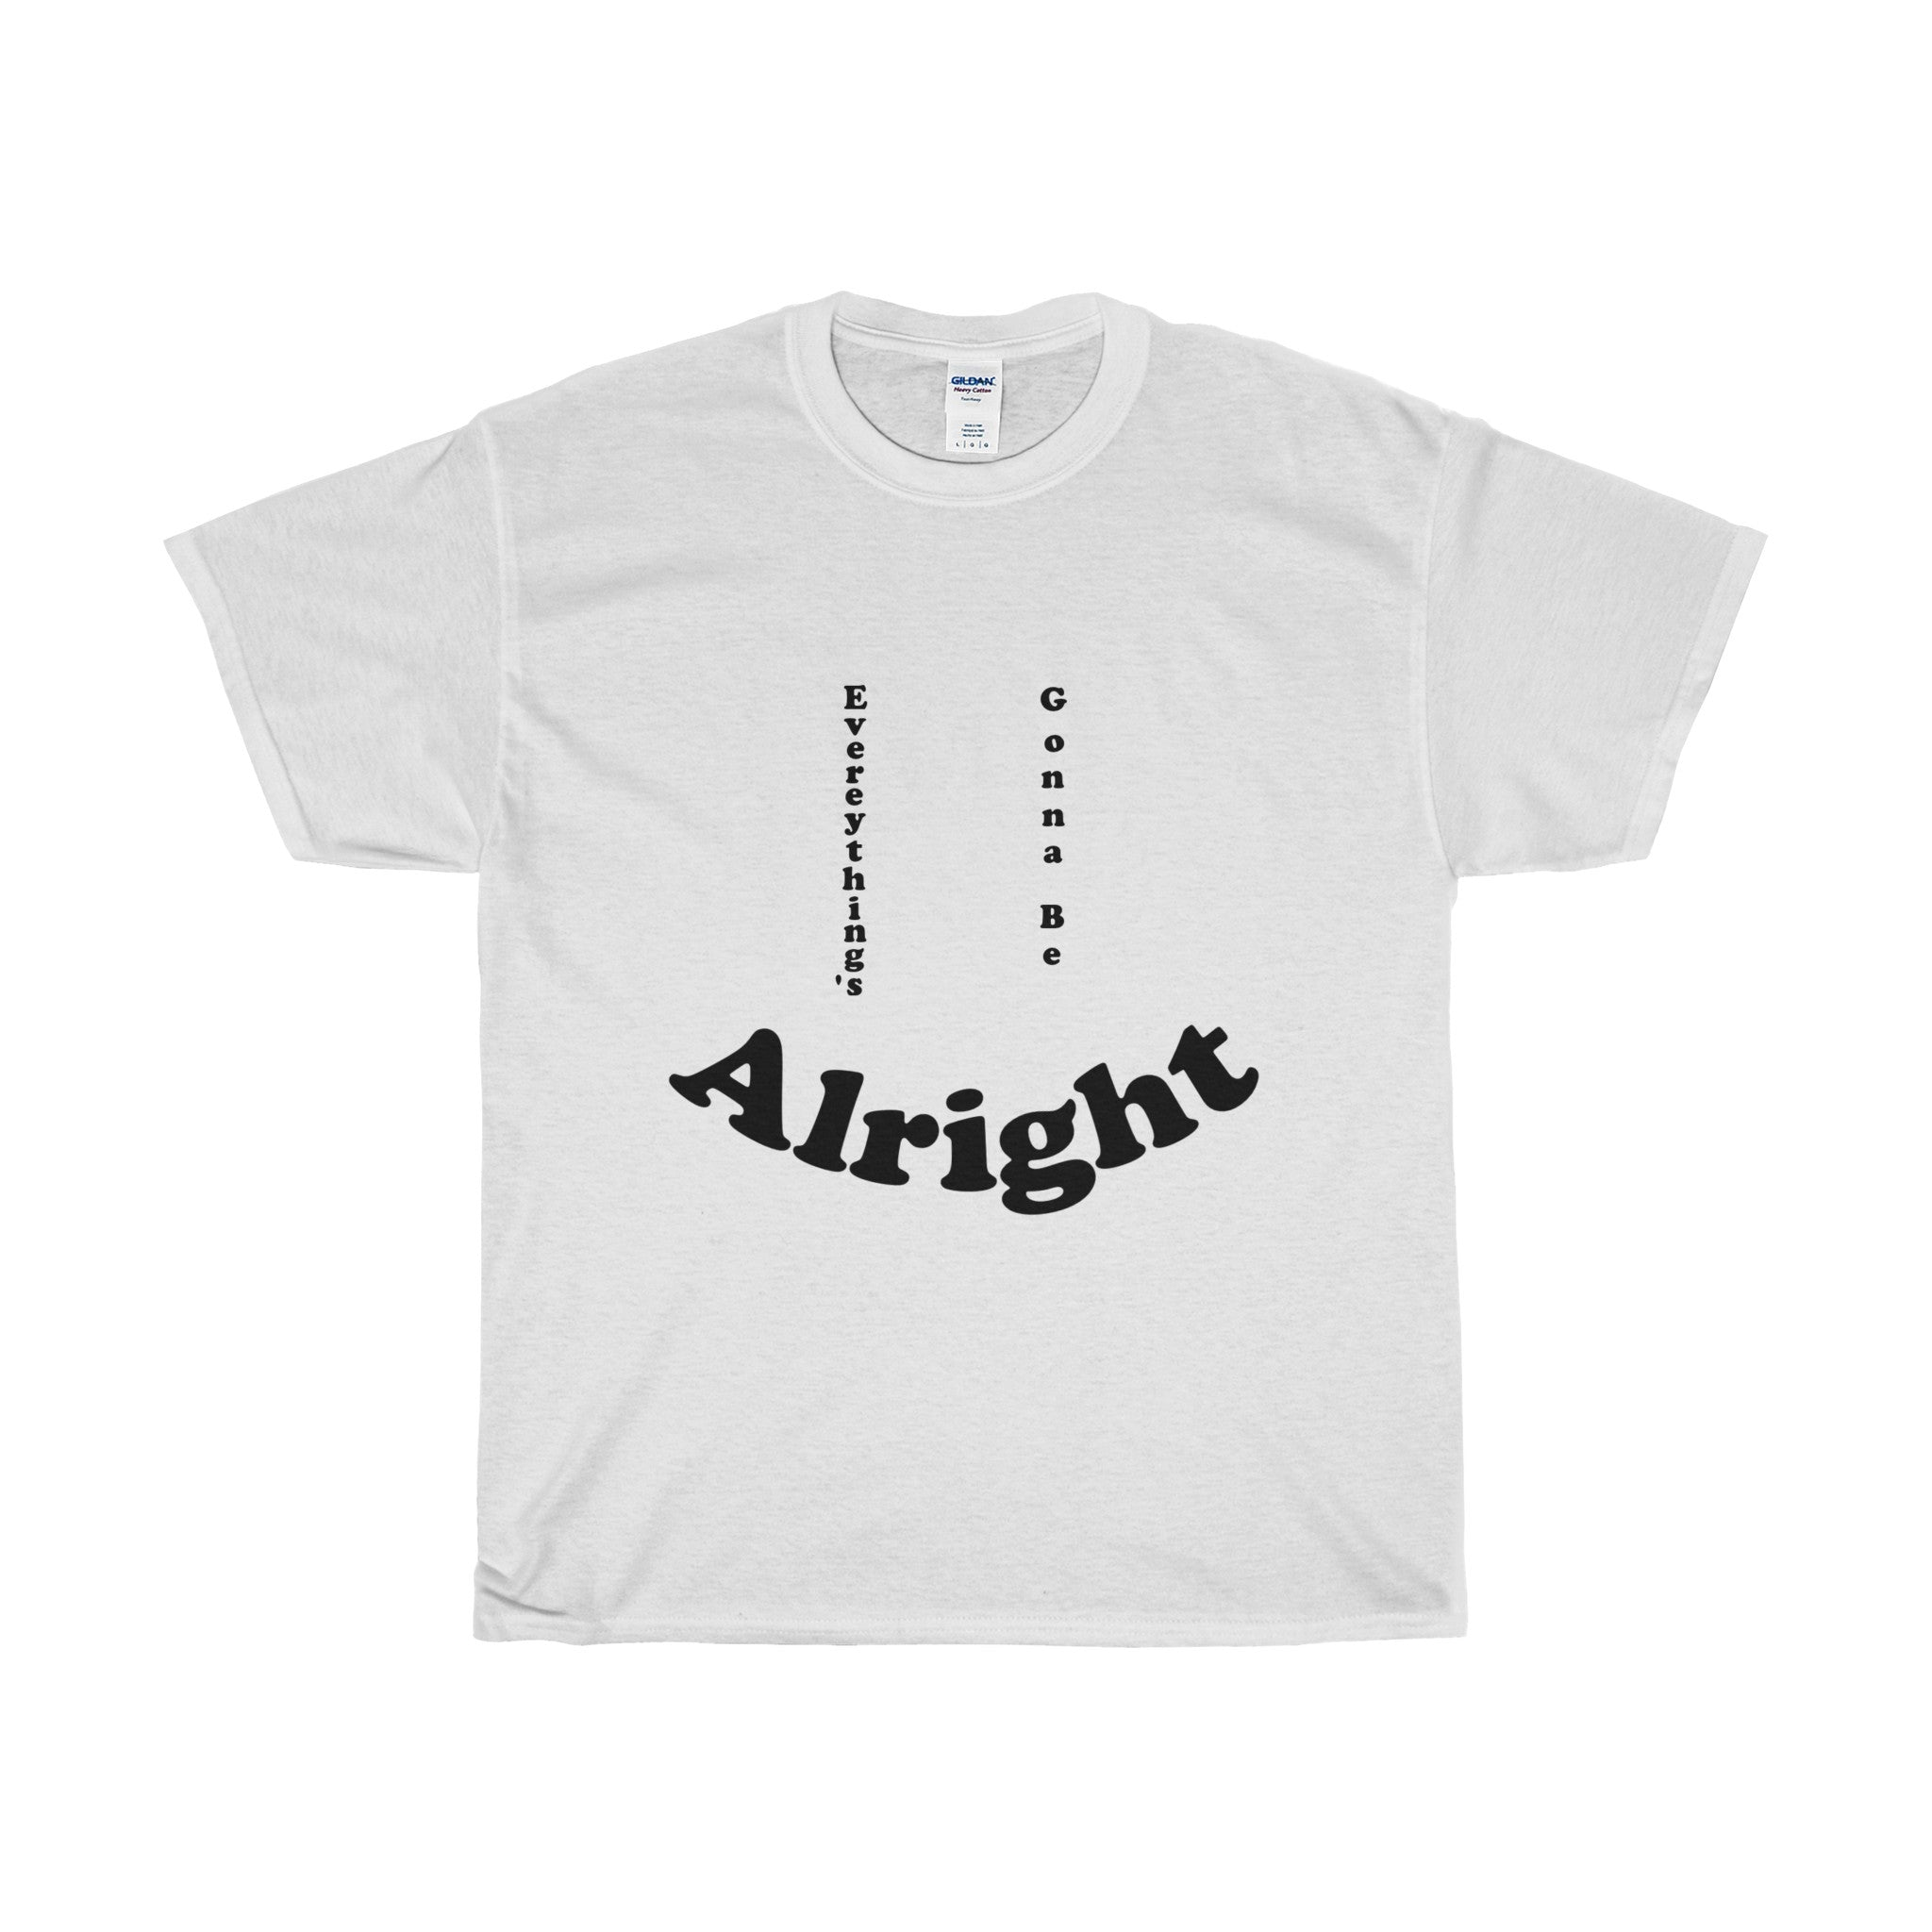 Vintage Retro Everything's Gonna Be Alright Unisex T-Shirt Tee